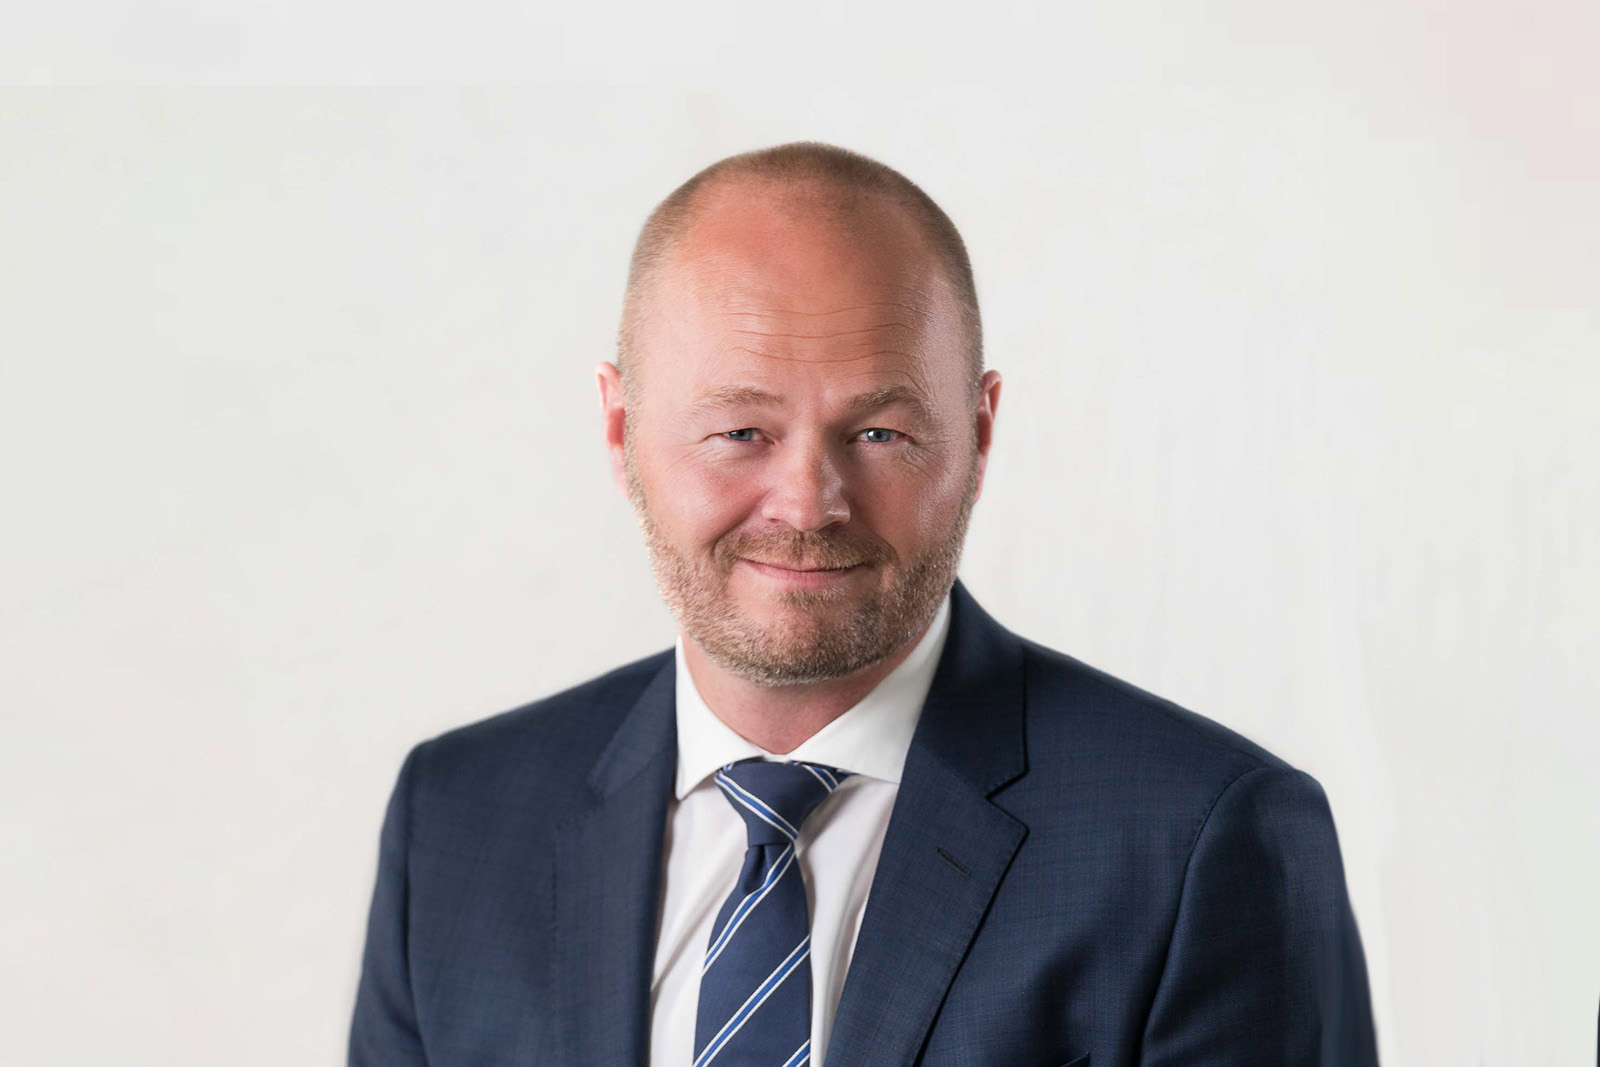 Ole Jensby named CEO, Nordics, at Quintet Private Bank